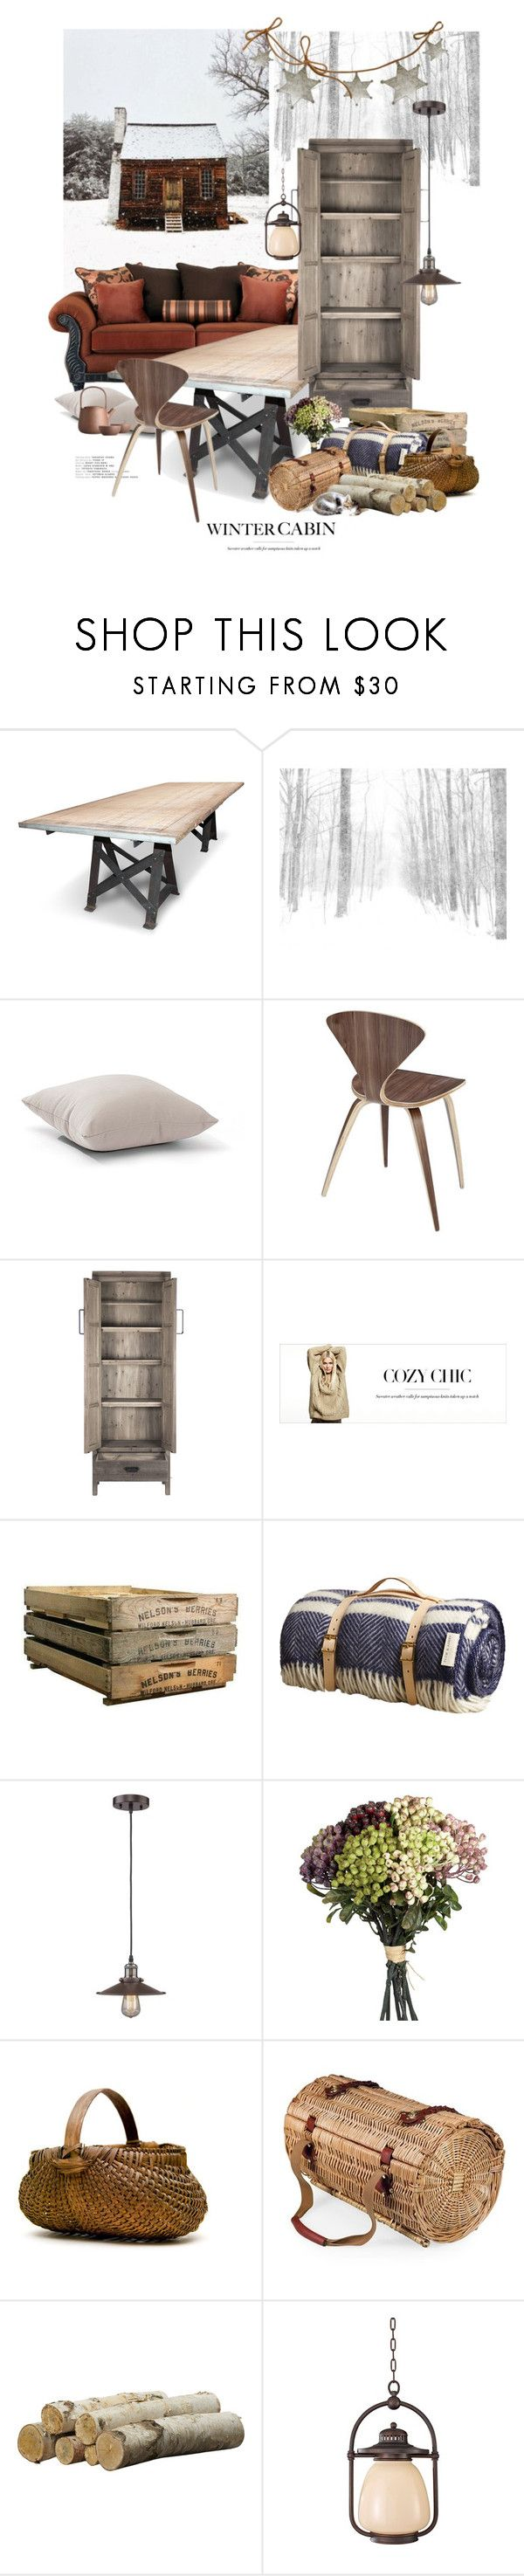 """""""A Winter Just Like Heaven"""" by halfmoonrun ❤ liked on Polyvore featuring interior, interiors, interior design, home, home decor, interior decorating, Zuo, Modway, Zentique and Plum & Ashby"""